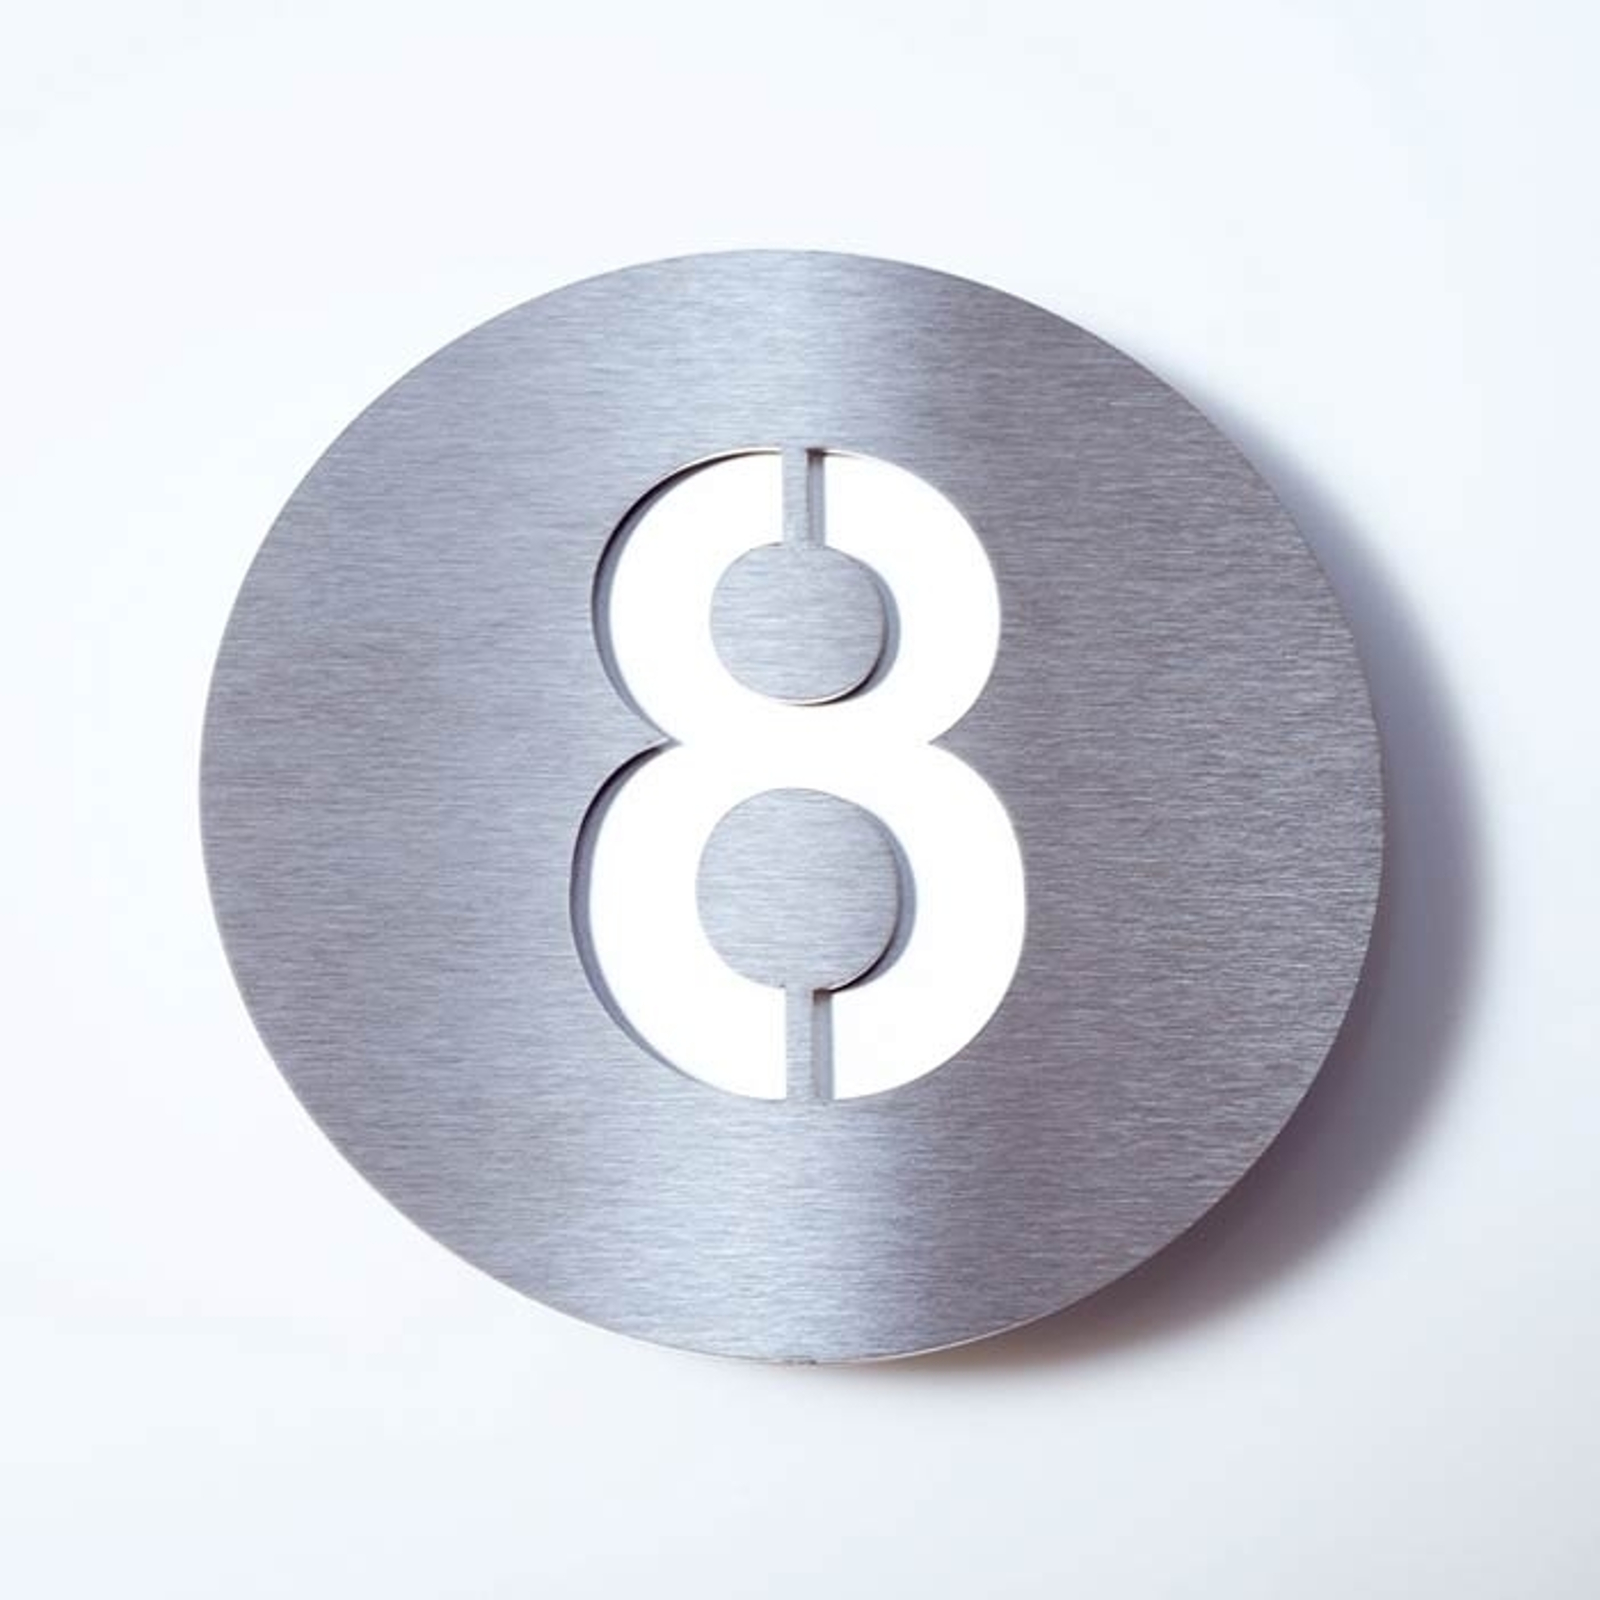 Stainless steel house number Round_1057086_1